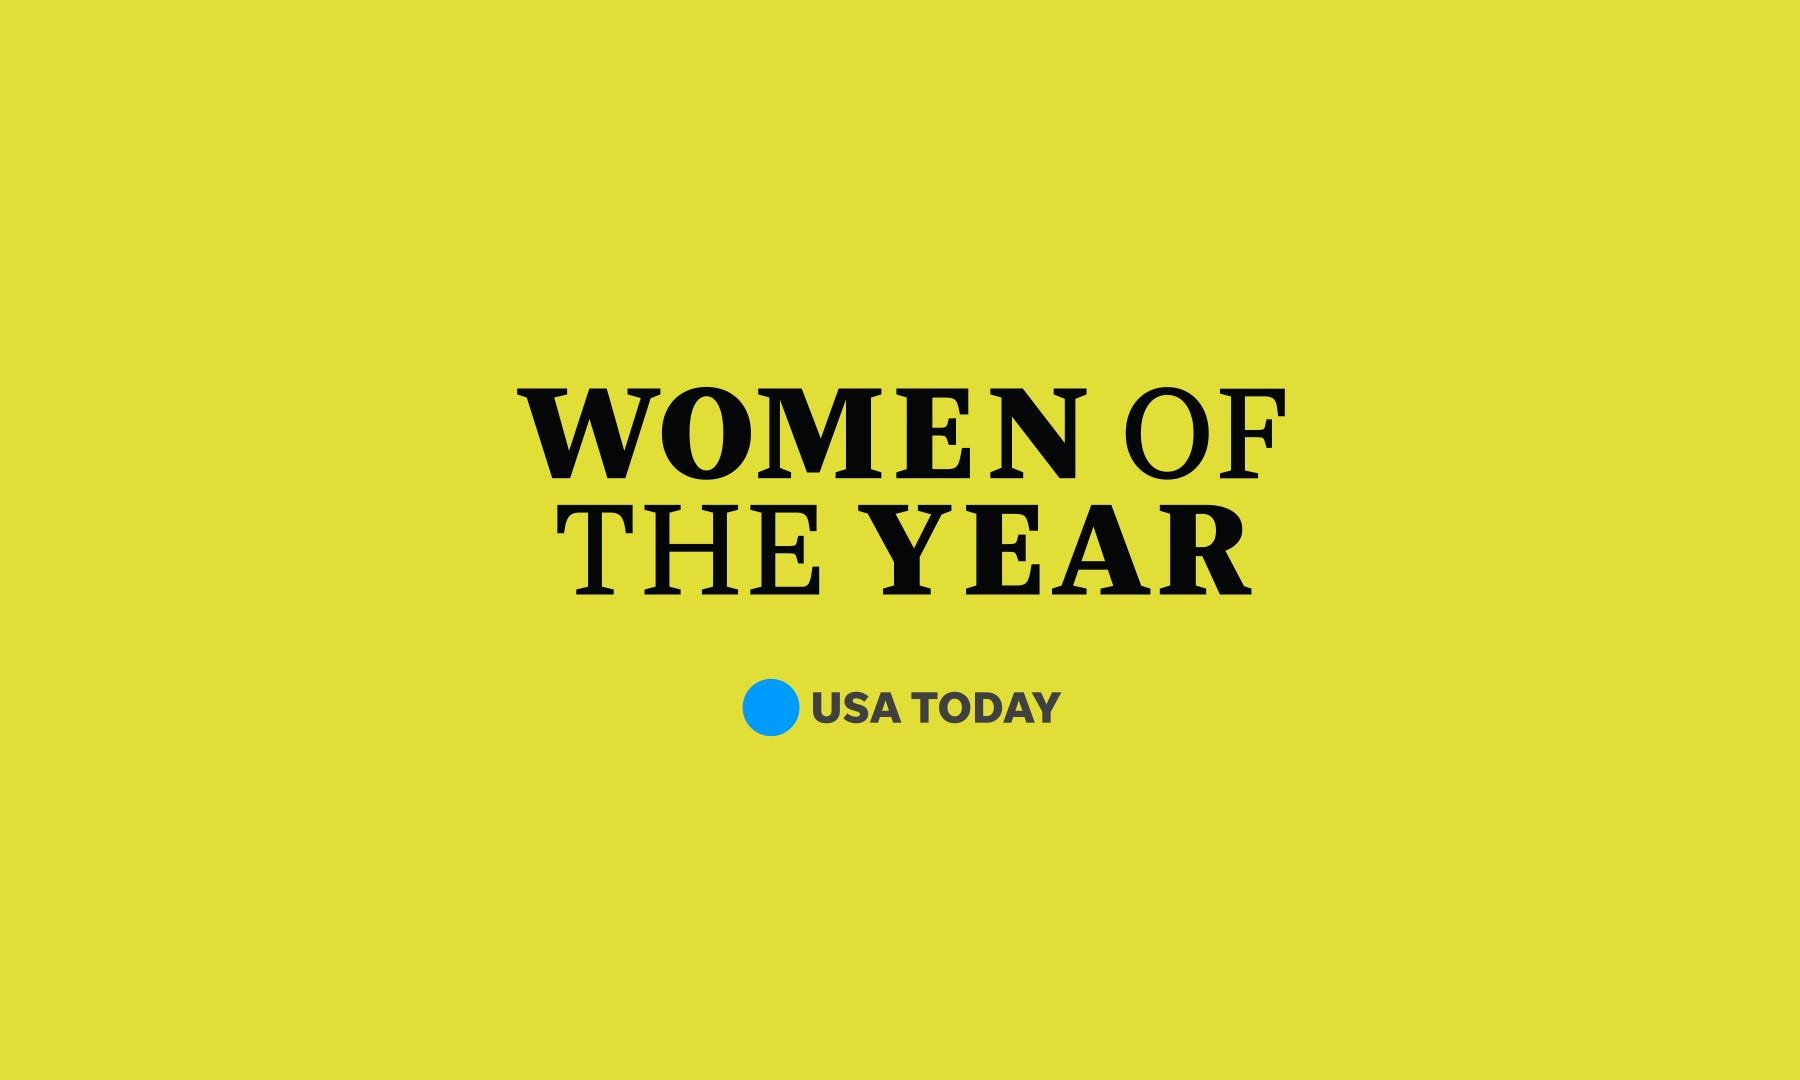 Women of the Year wordmark